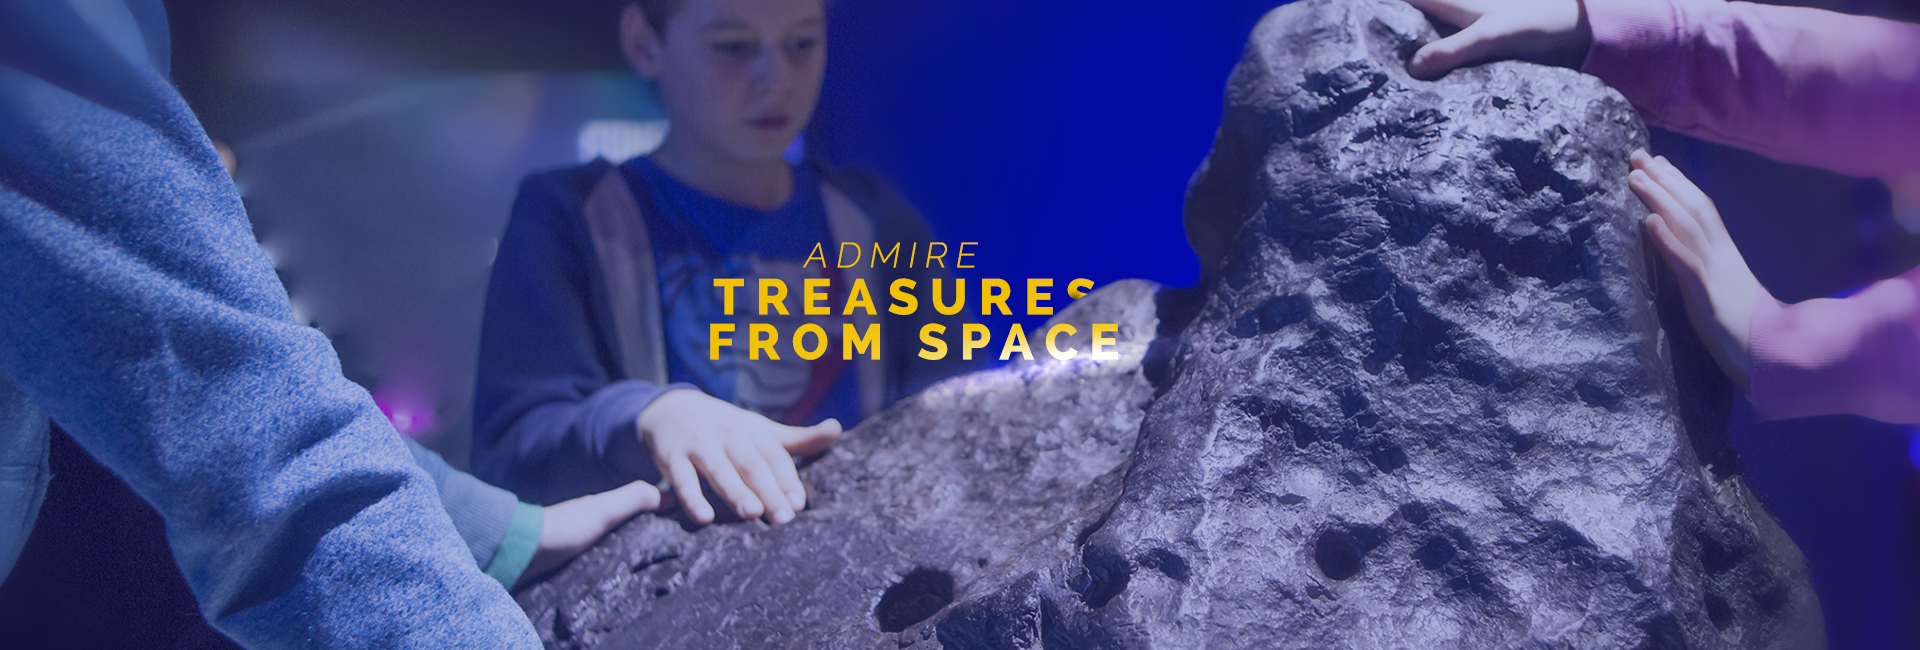 Admire treasures from space